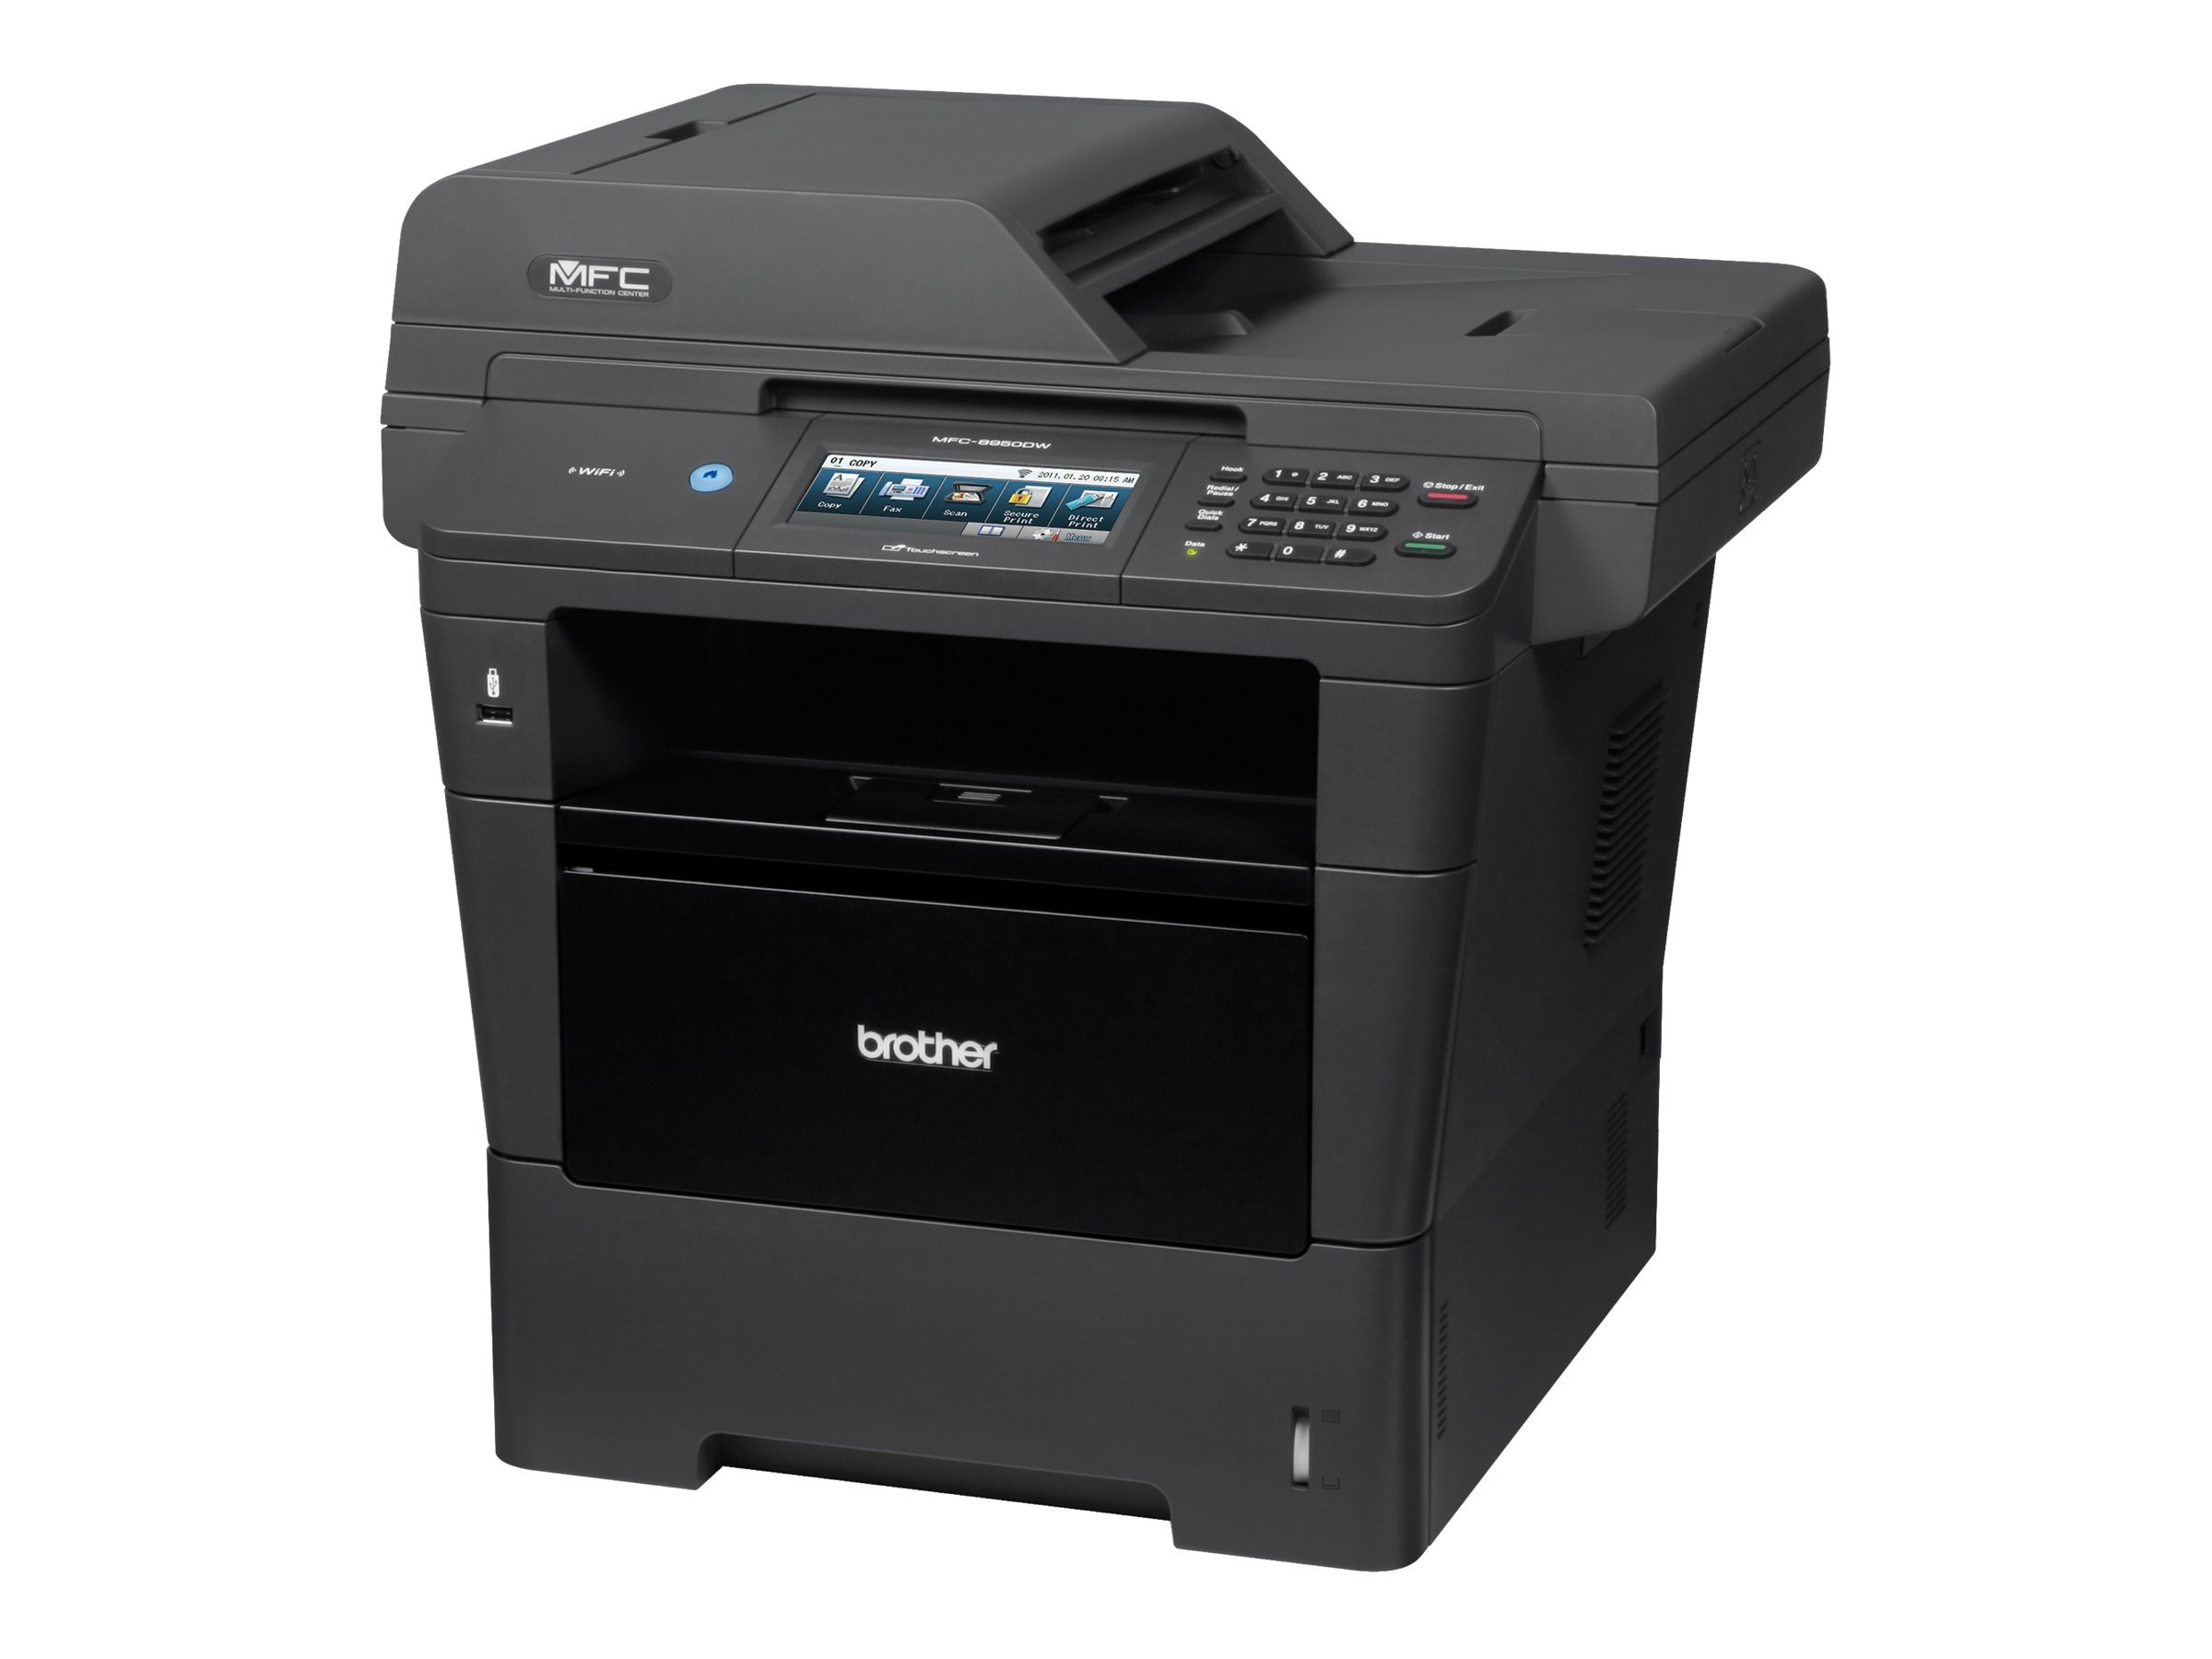 Brother MFC-8950DW Laser All-In-One